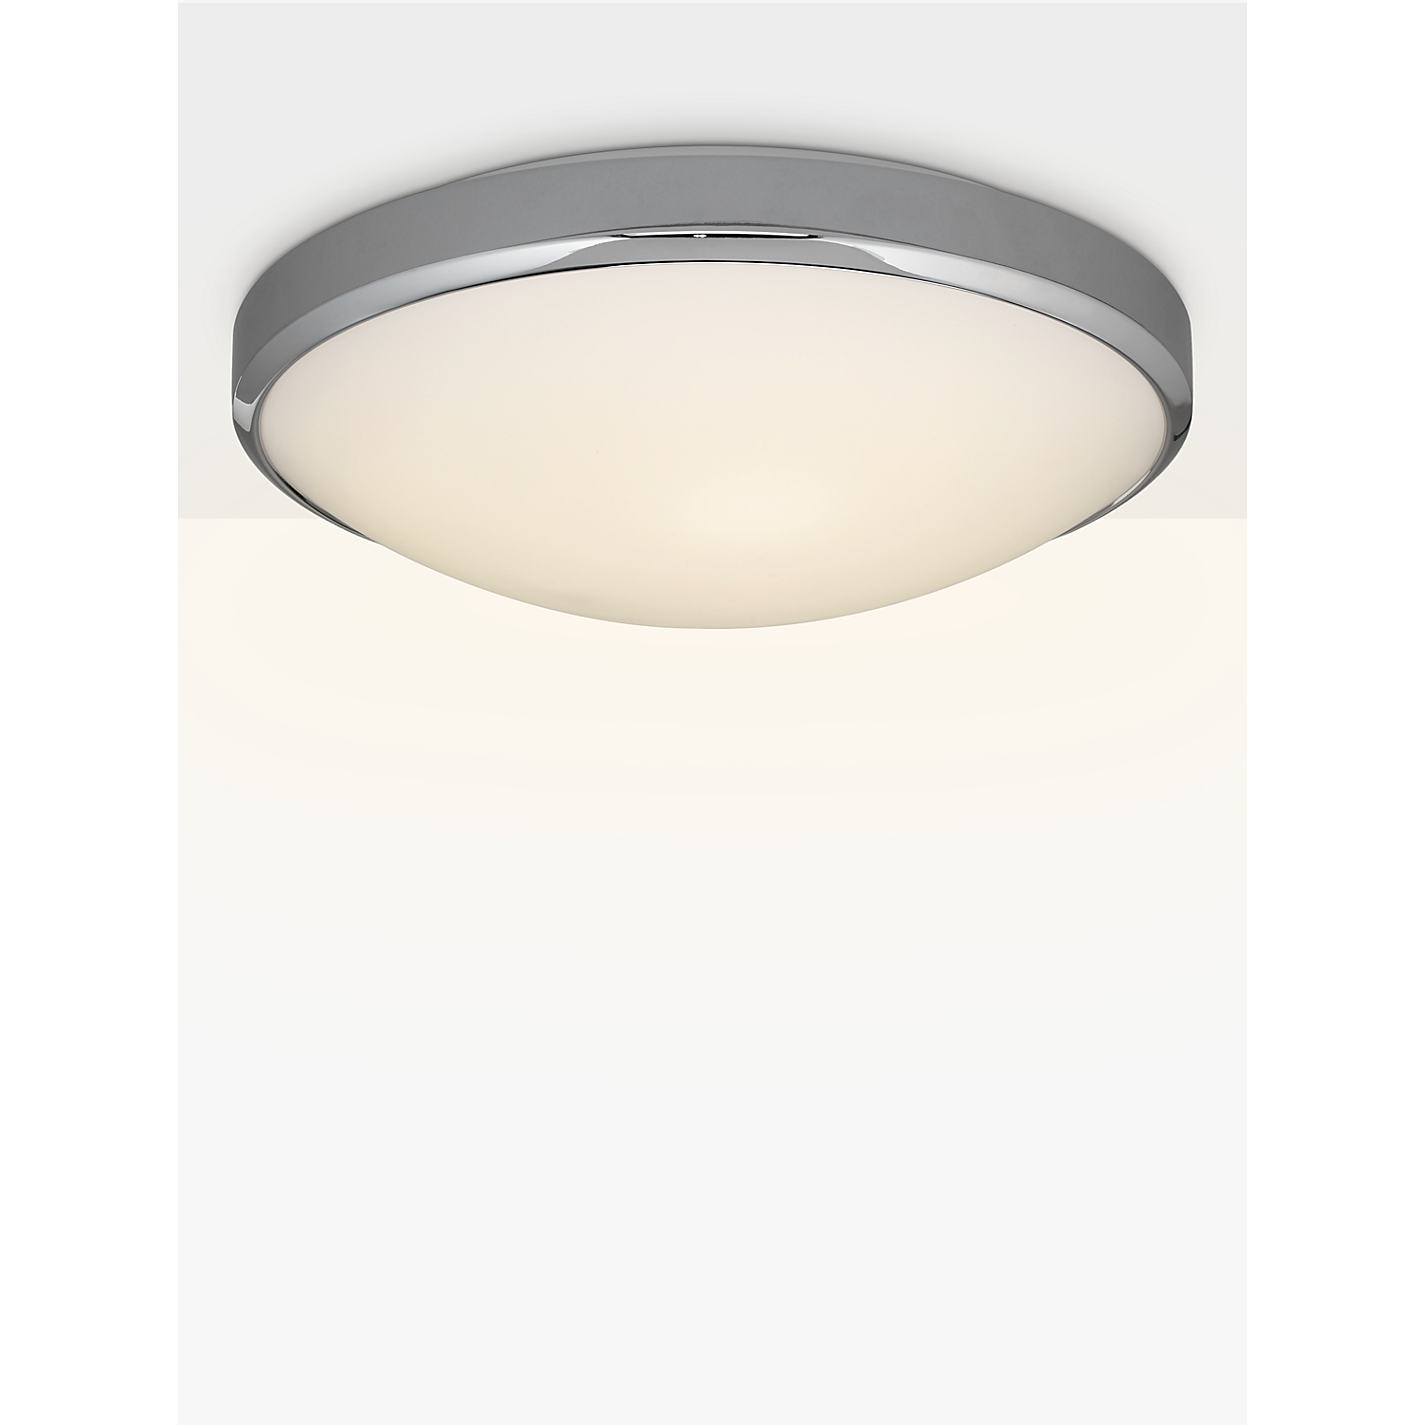 Bathroom Lights John Lewis buy astro osaka led bathroom light, white/chrome | john lewis